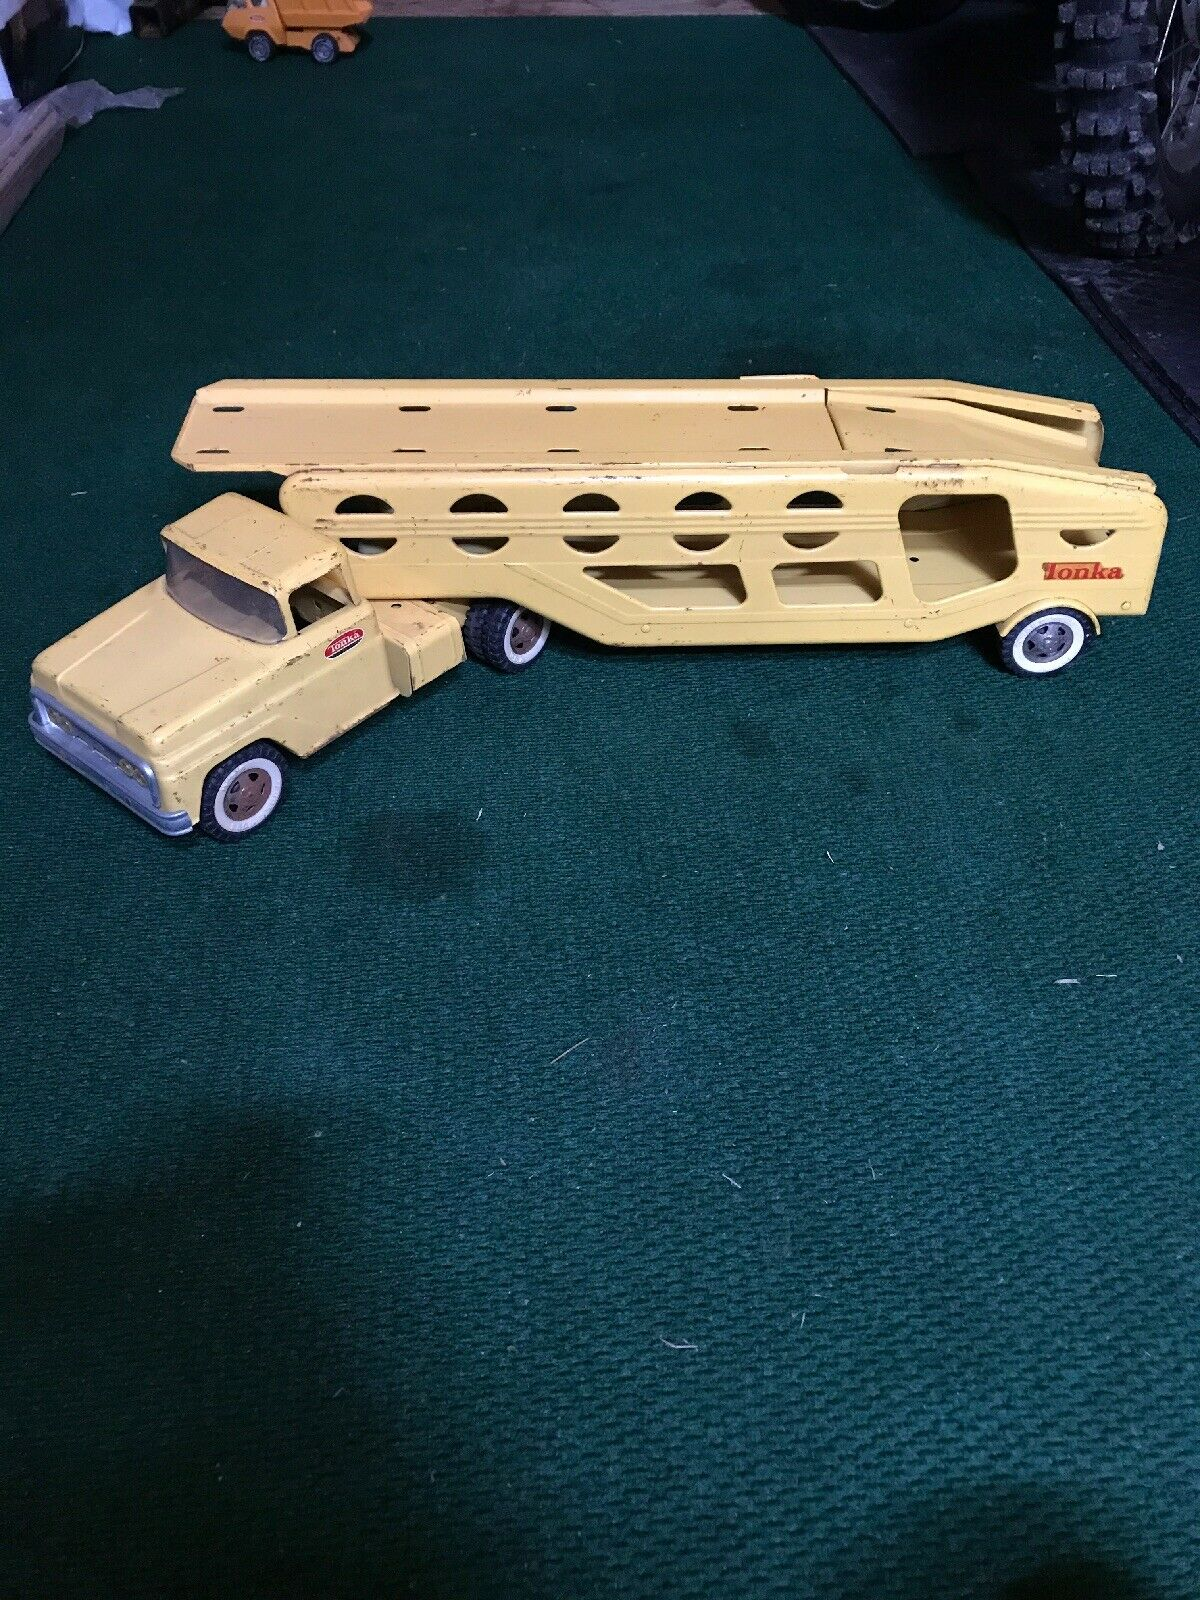 Vintage 1960's Tonka Car Carrier Pressed Steel Beauty Made In In In U.S.A. de0eb4